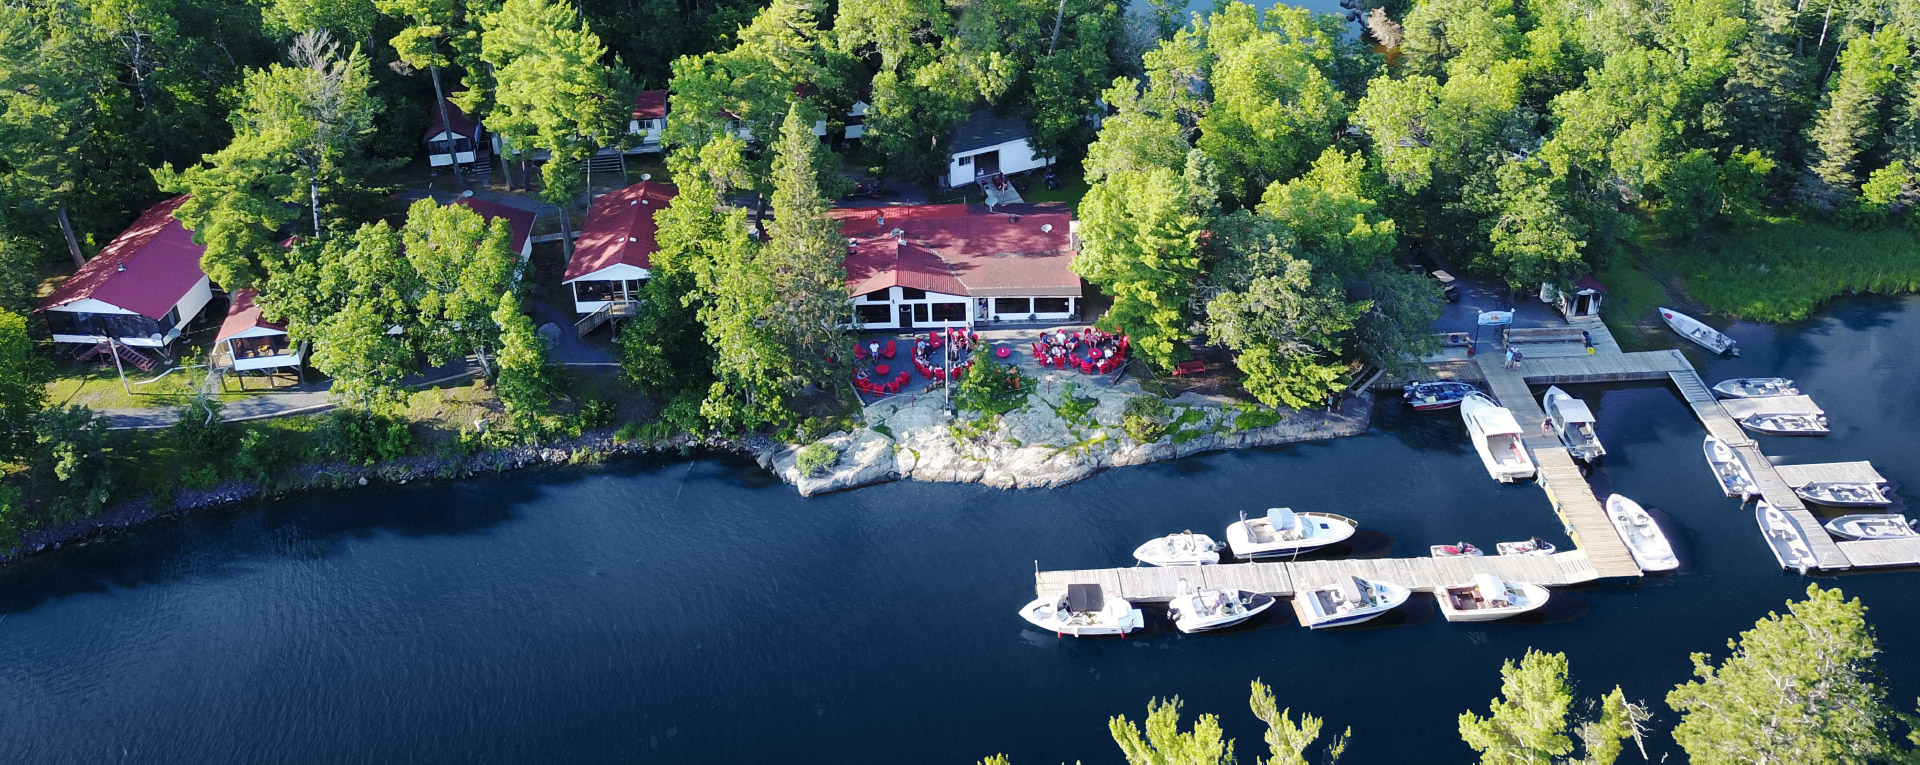 Aerial View of Crow Rock Lodge and Boats by Dock